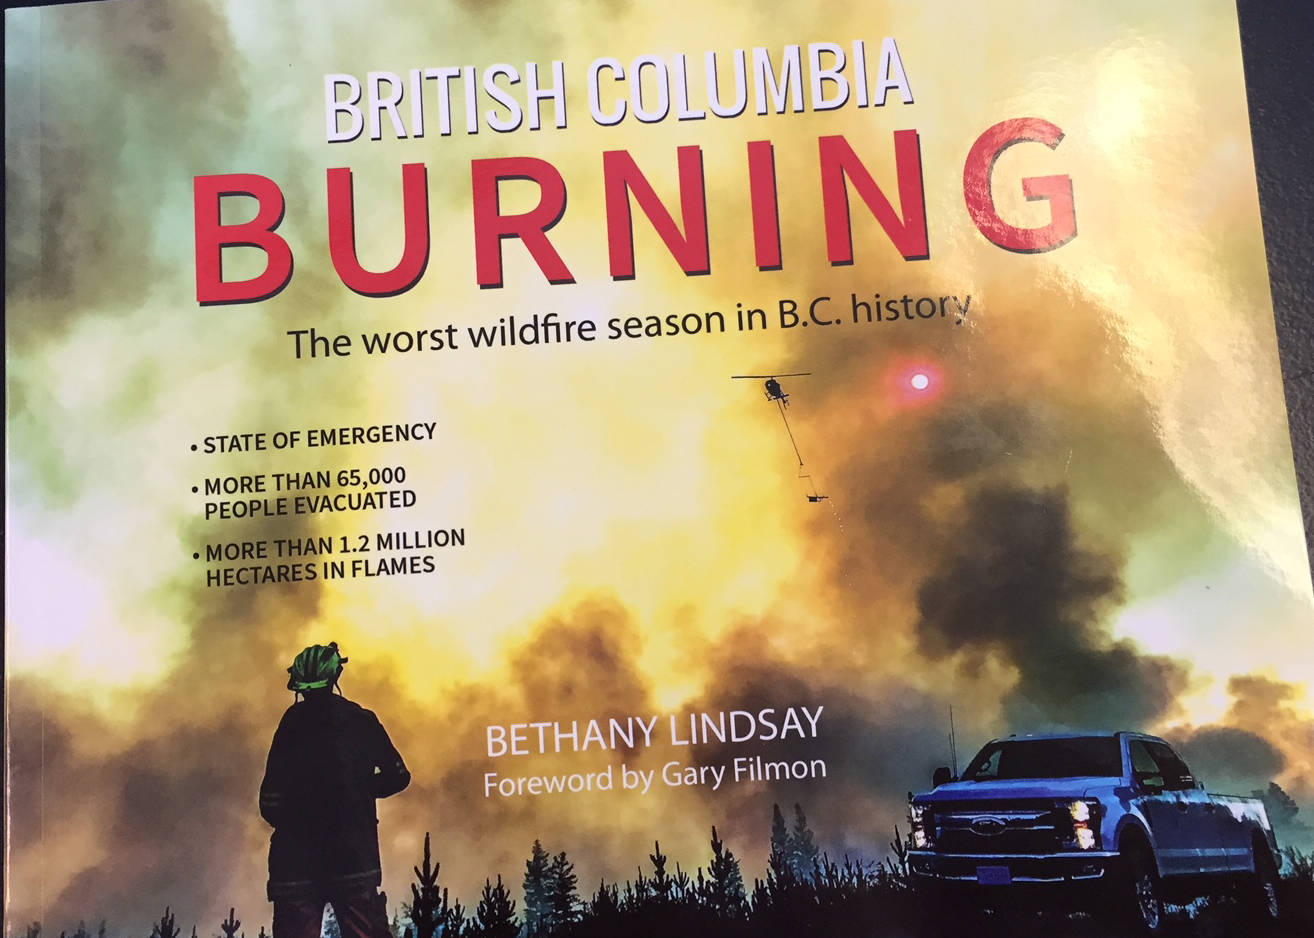 New book looks back at worst wildfire season in B.C. history.